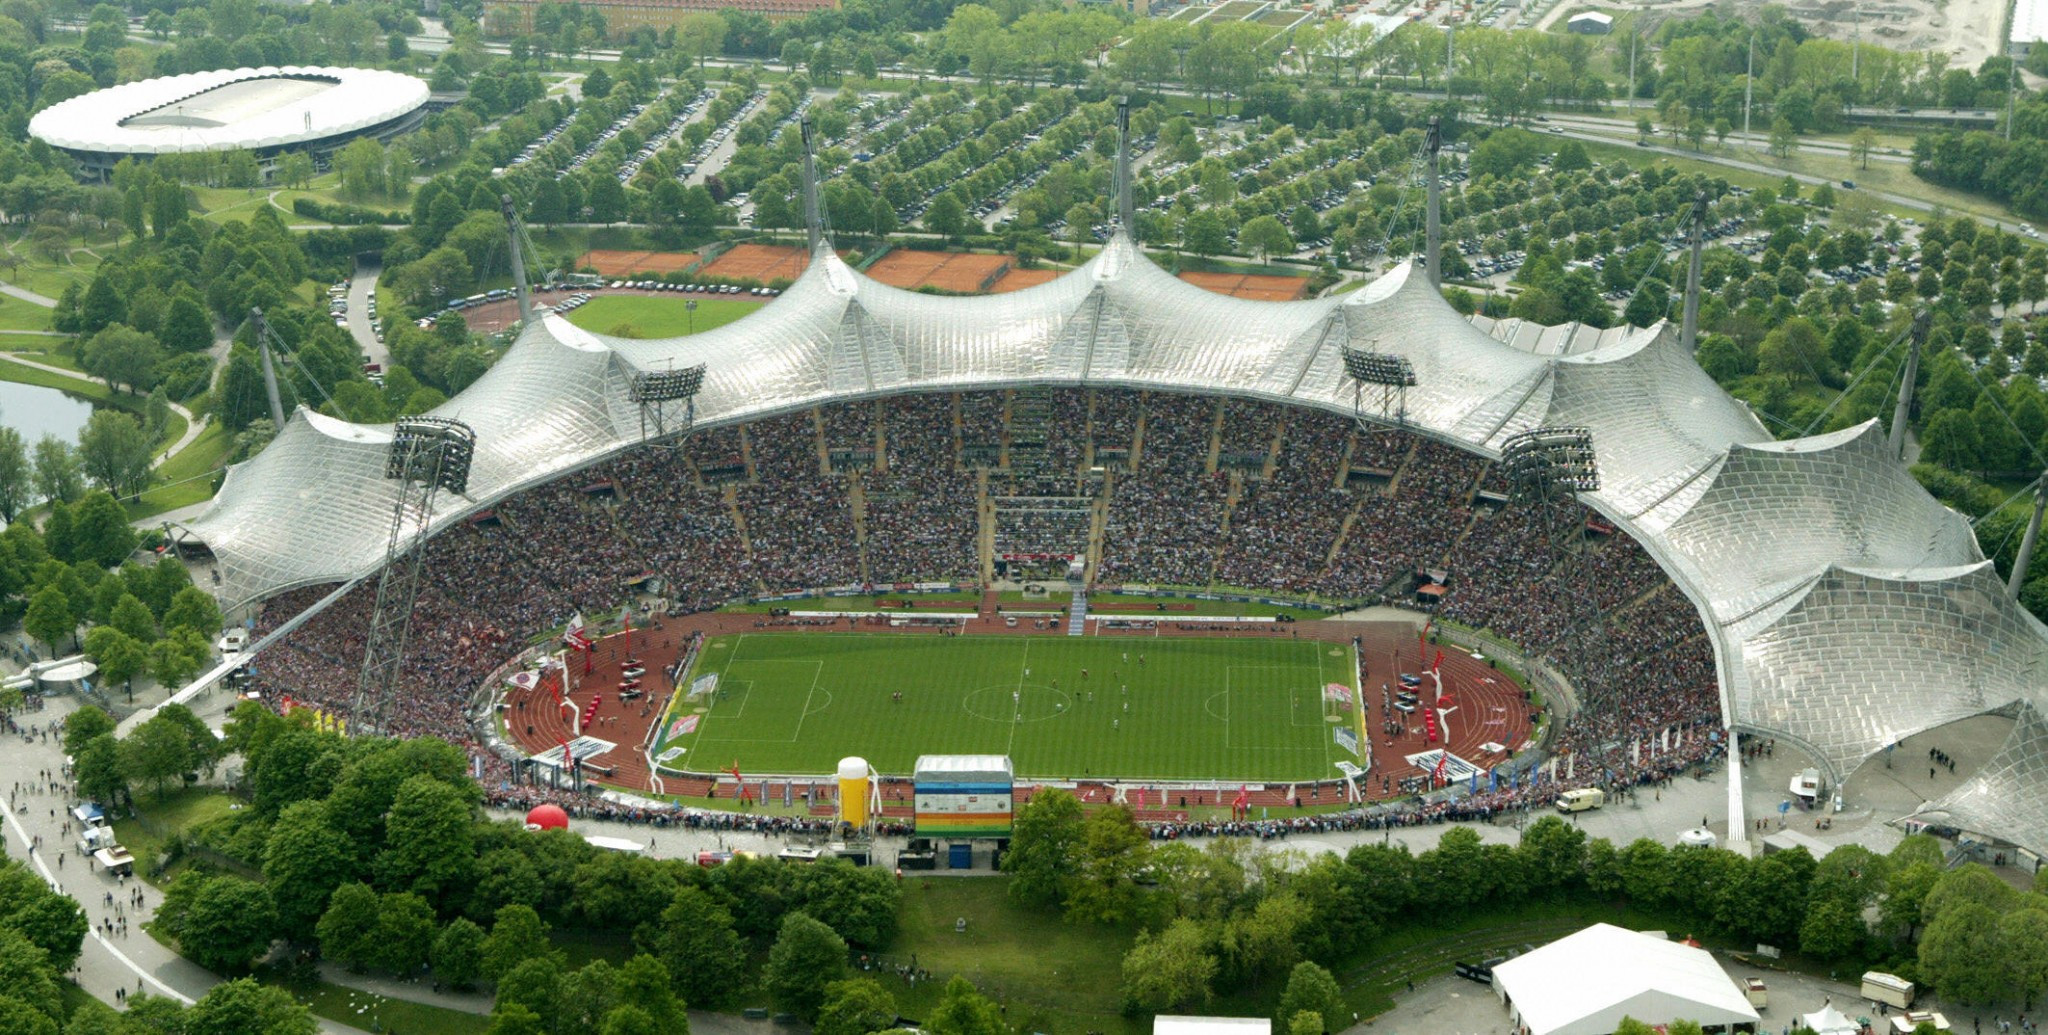 Munich's Olympic Stadium hosting IFSC Bouldering World Cup showdown in men's competition